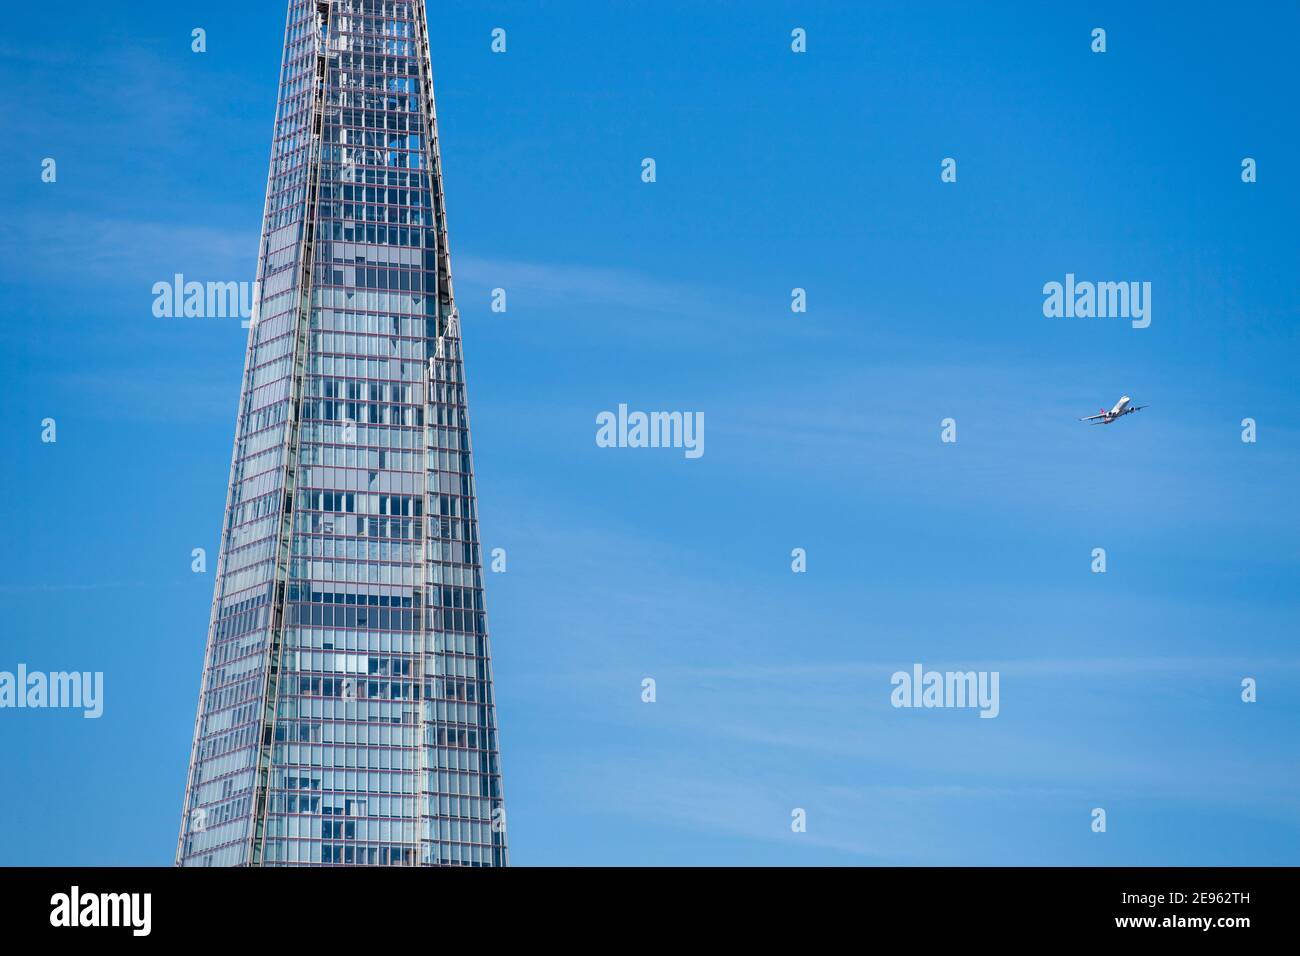 Low flying passenger plane close to the Shard on its final approach to landing at London City Airport, England, UK Stock Photo